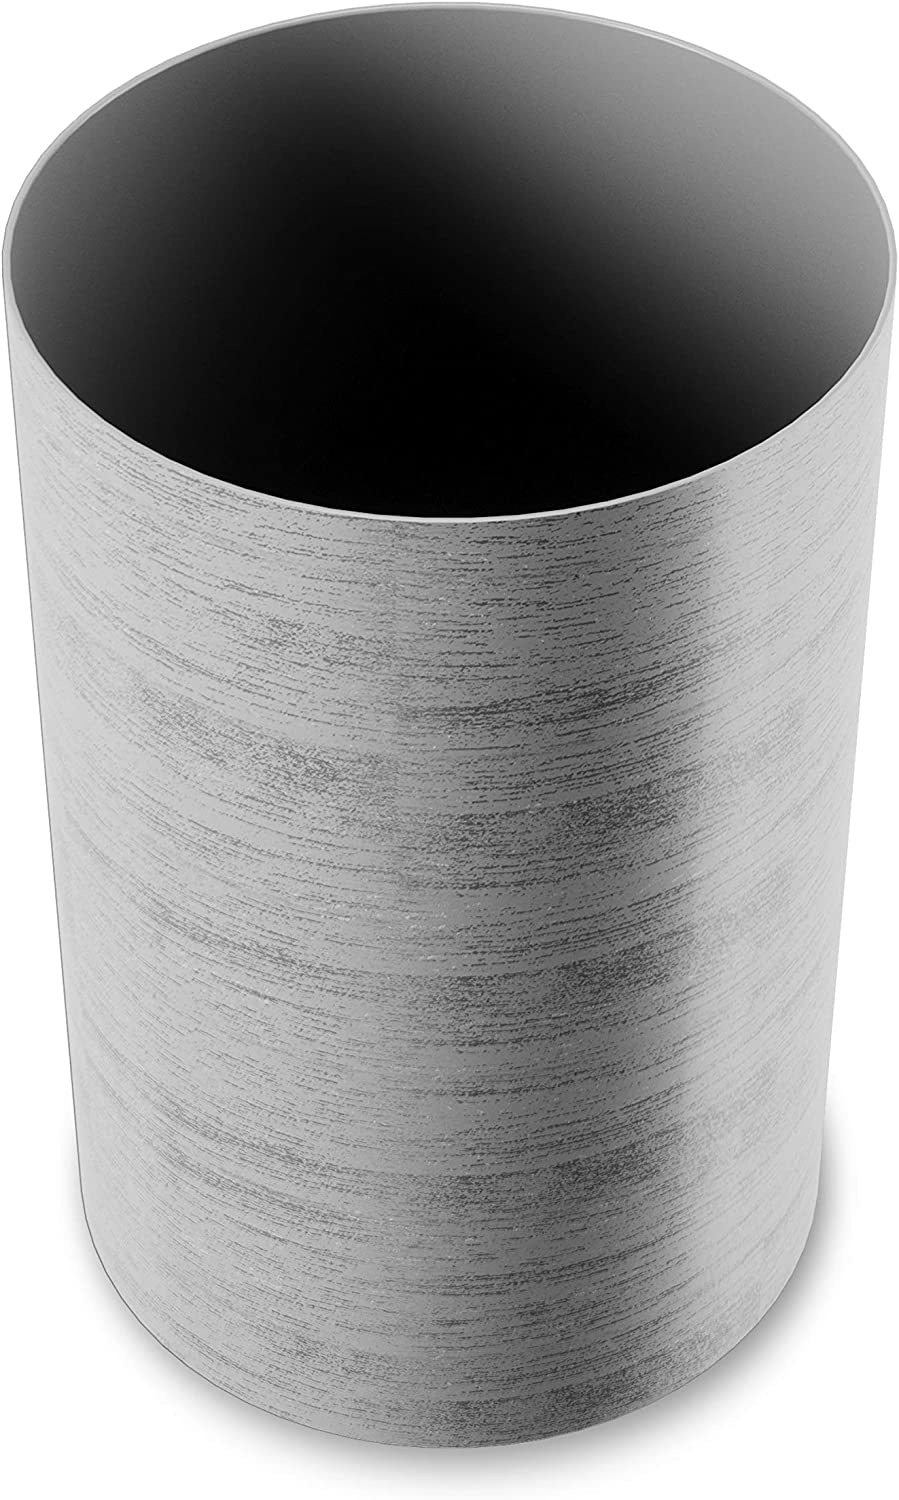 Umbra Treela Small Trash Durable Garbage Can Waste Basket for Bathroom, Bedroom, Office and More | 4.75 Gallon Capacity with Stylish Light Grey Barn Wood Exterior Finish, Graywood